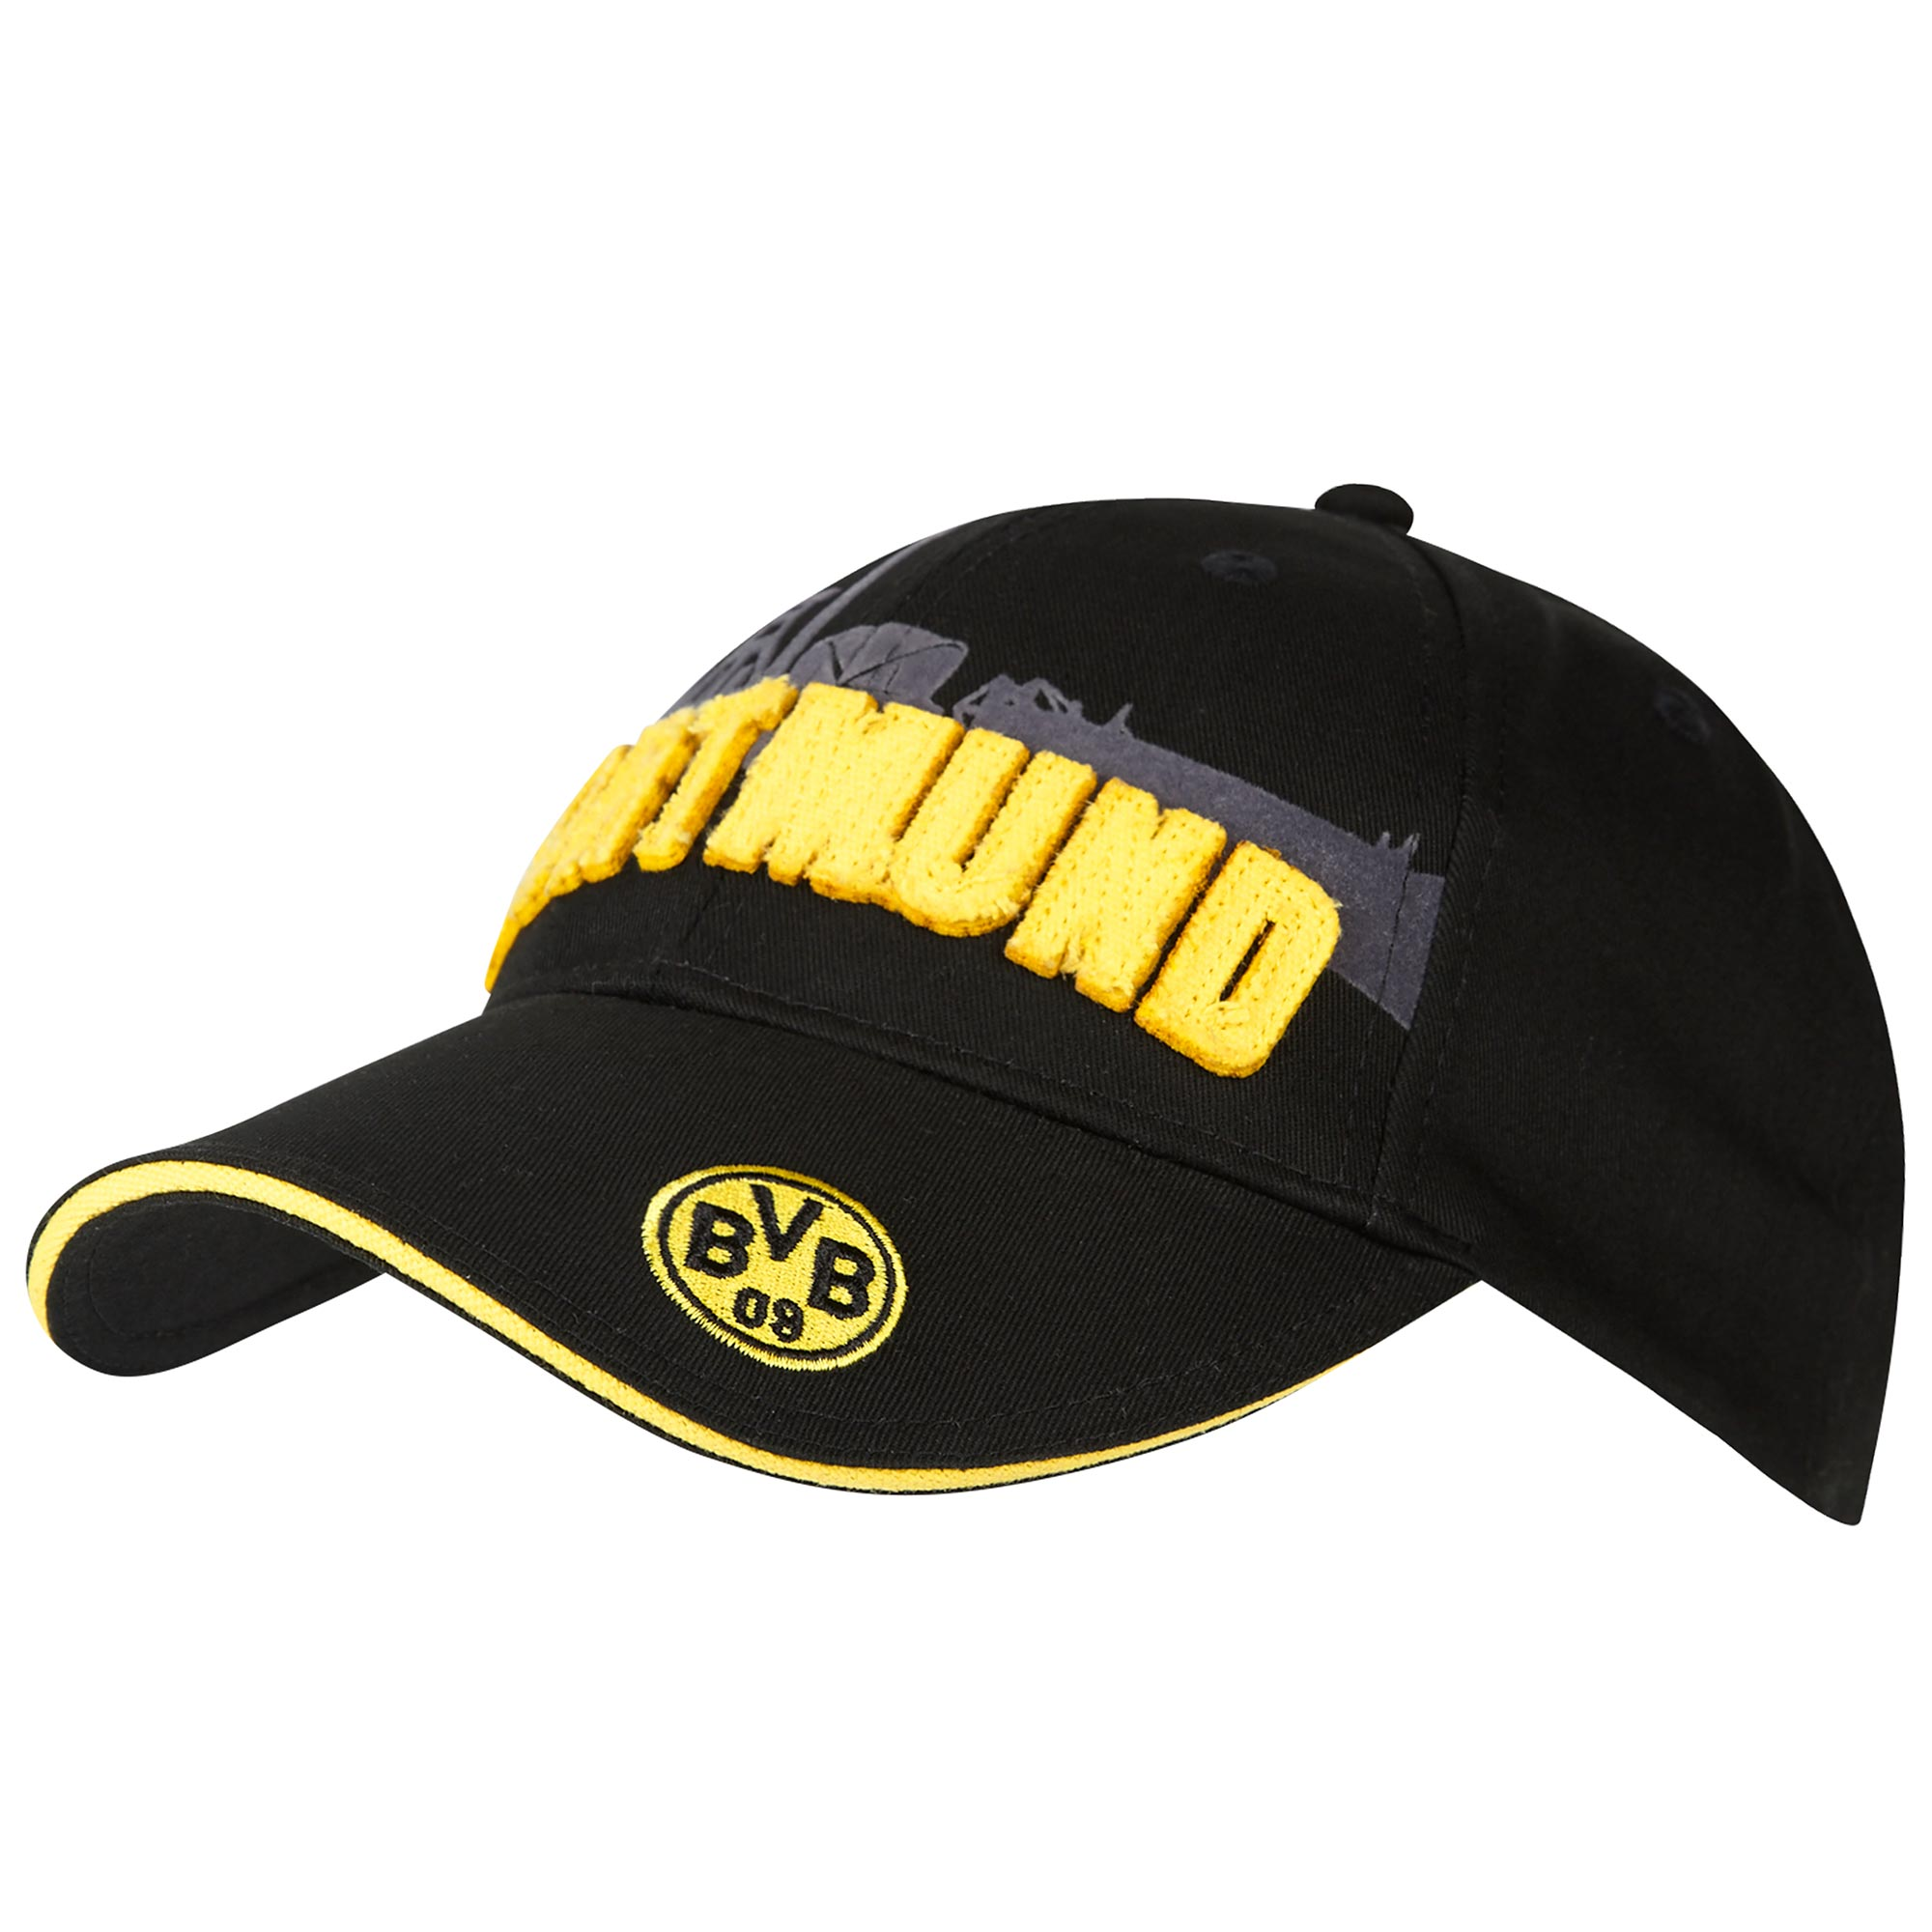 BVB Dortmund Our City Cap